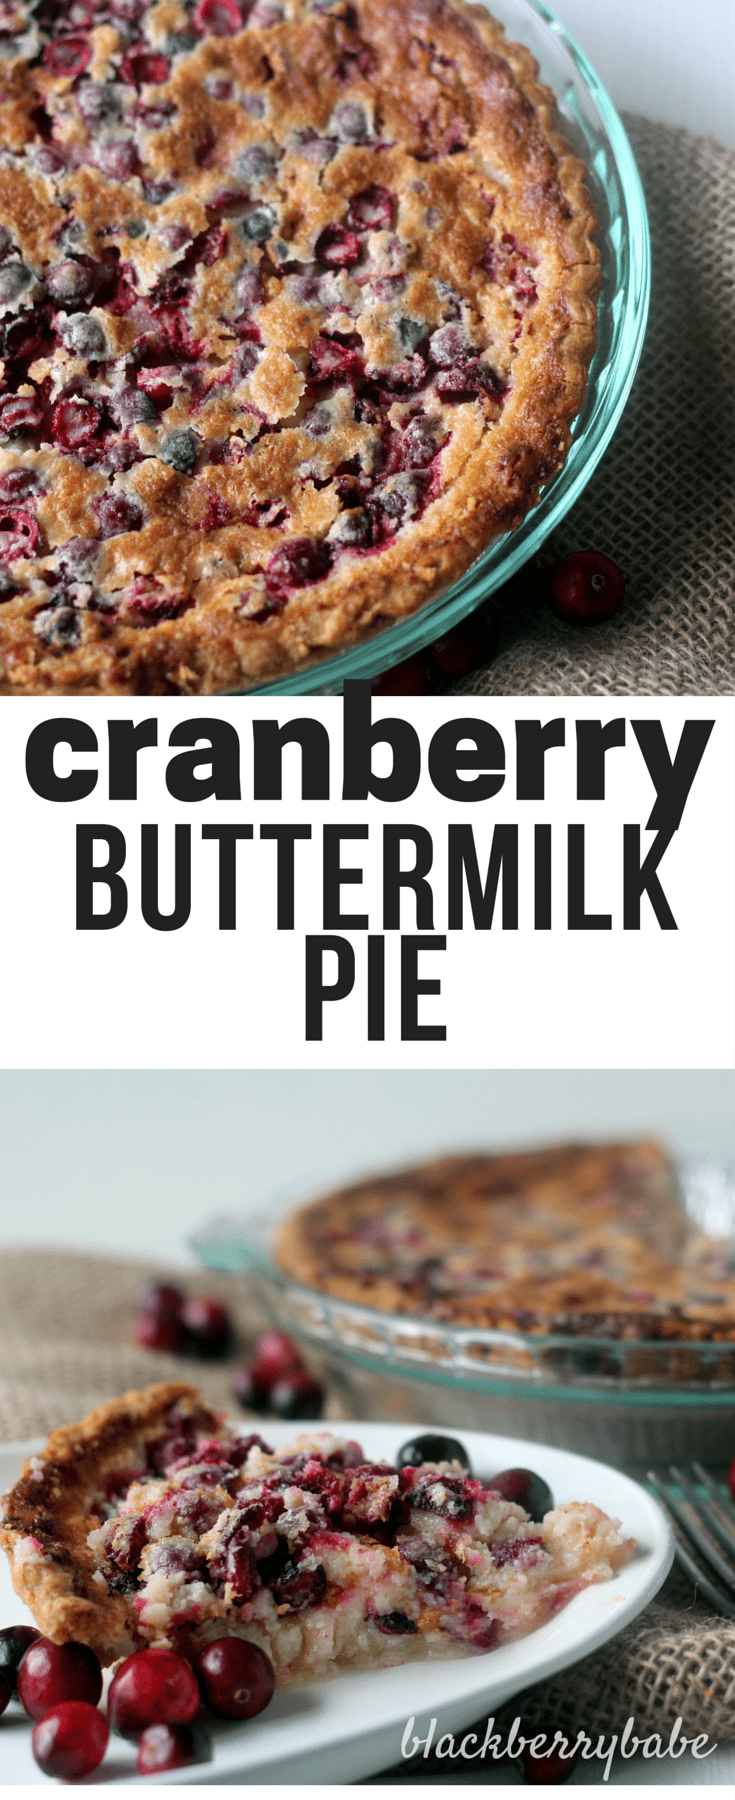 Easy Cranberry Buttermilk Pie Recipe - Soft, fluffy and sweet buttermilk pie with tart cranberries.